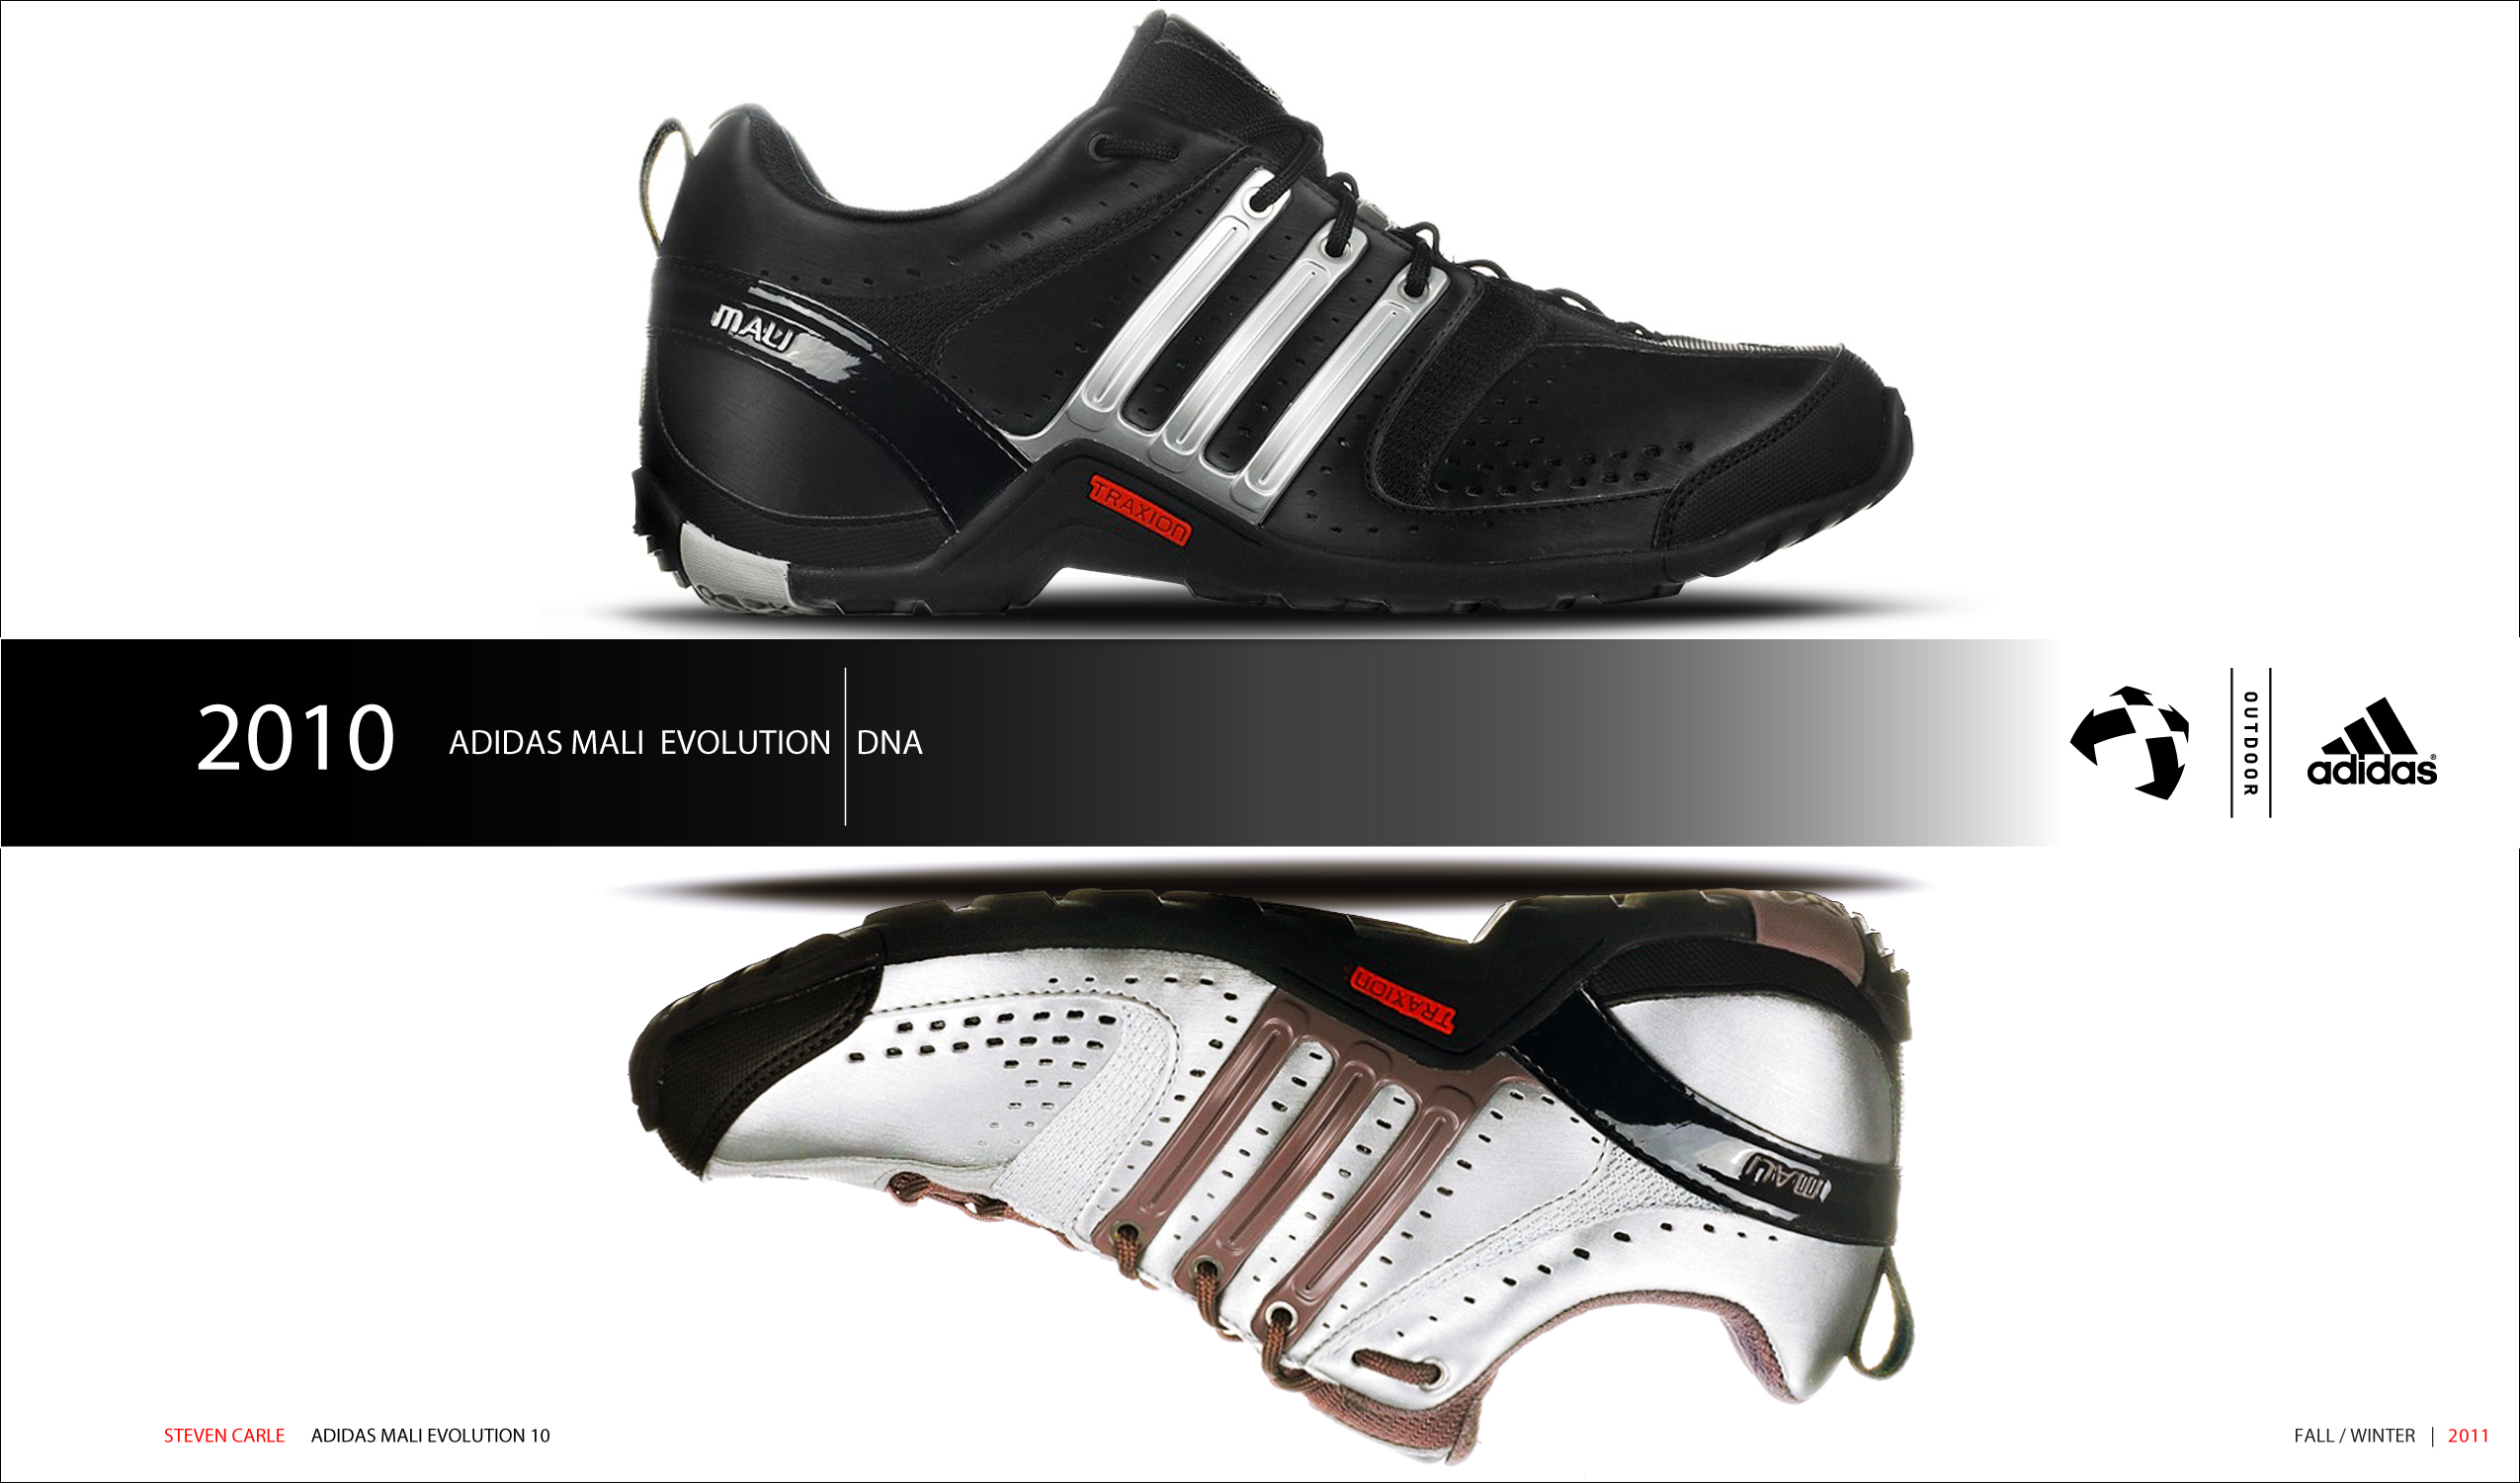 ccef36c7d0c Adidas Mali Evolution 2010 on Behance